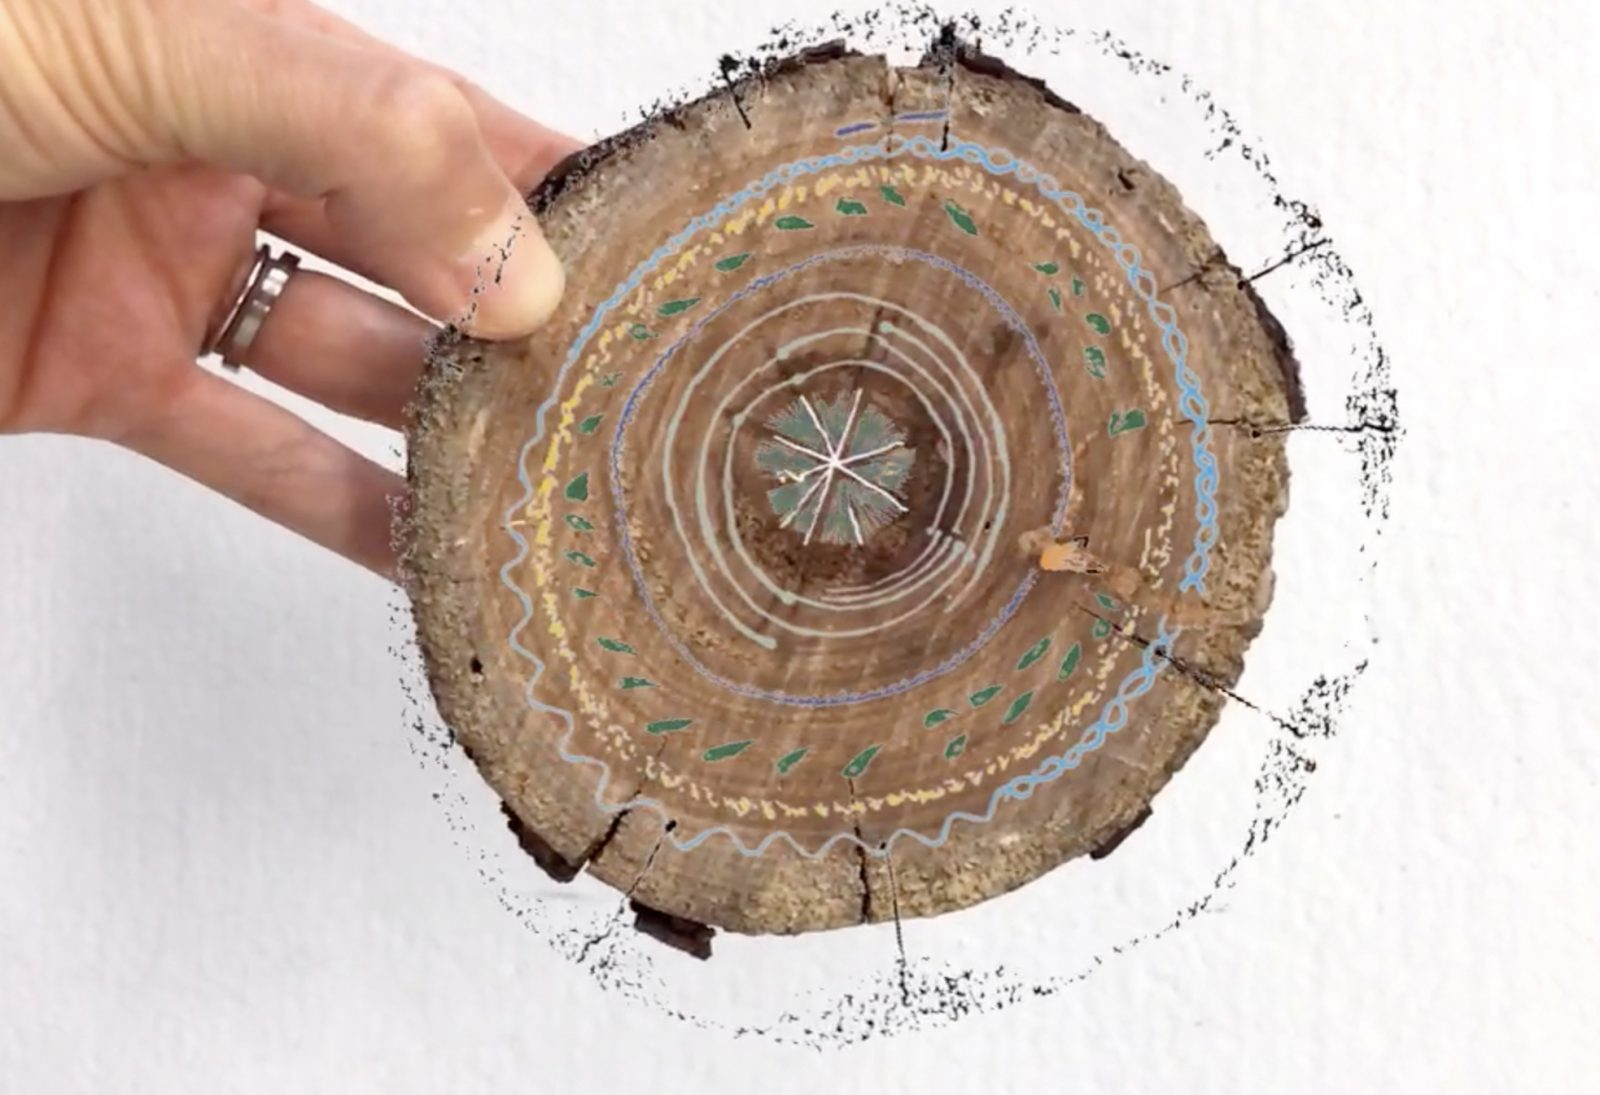 Image: Anna Madeleine, Tree Rings, 2019, screenshot of augmented reality artwork.